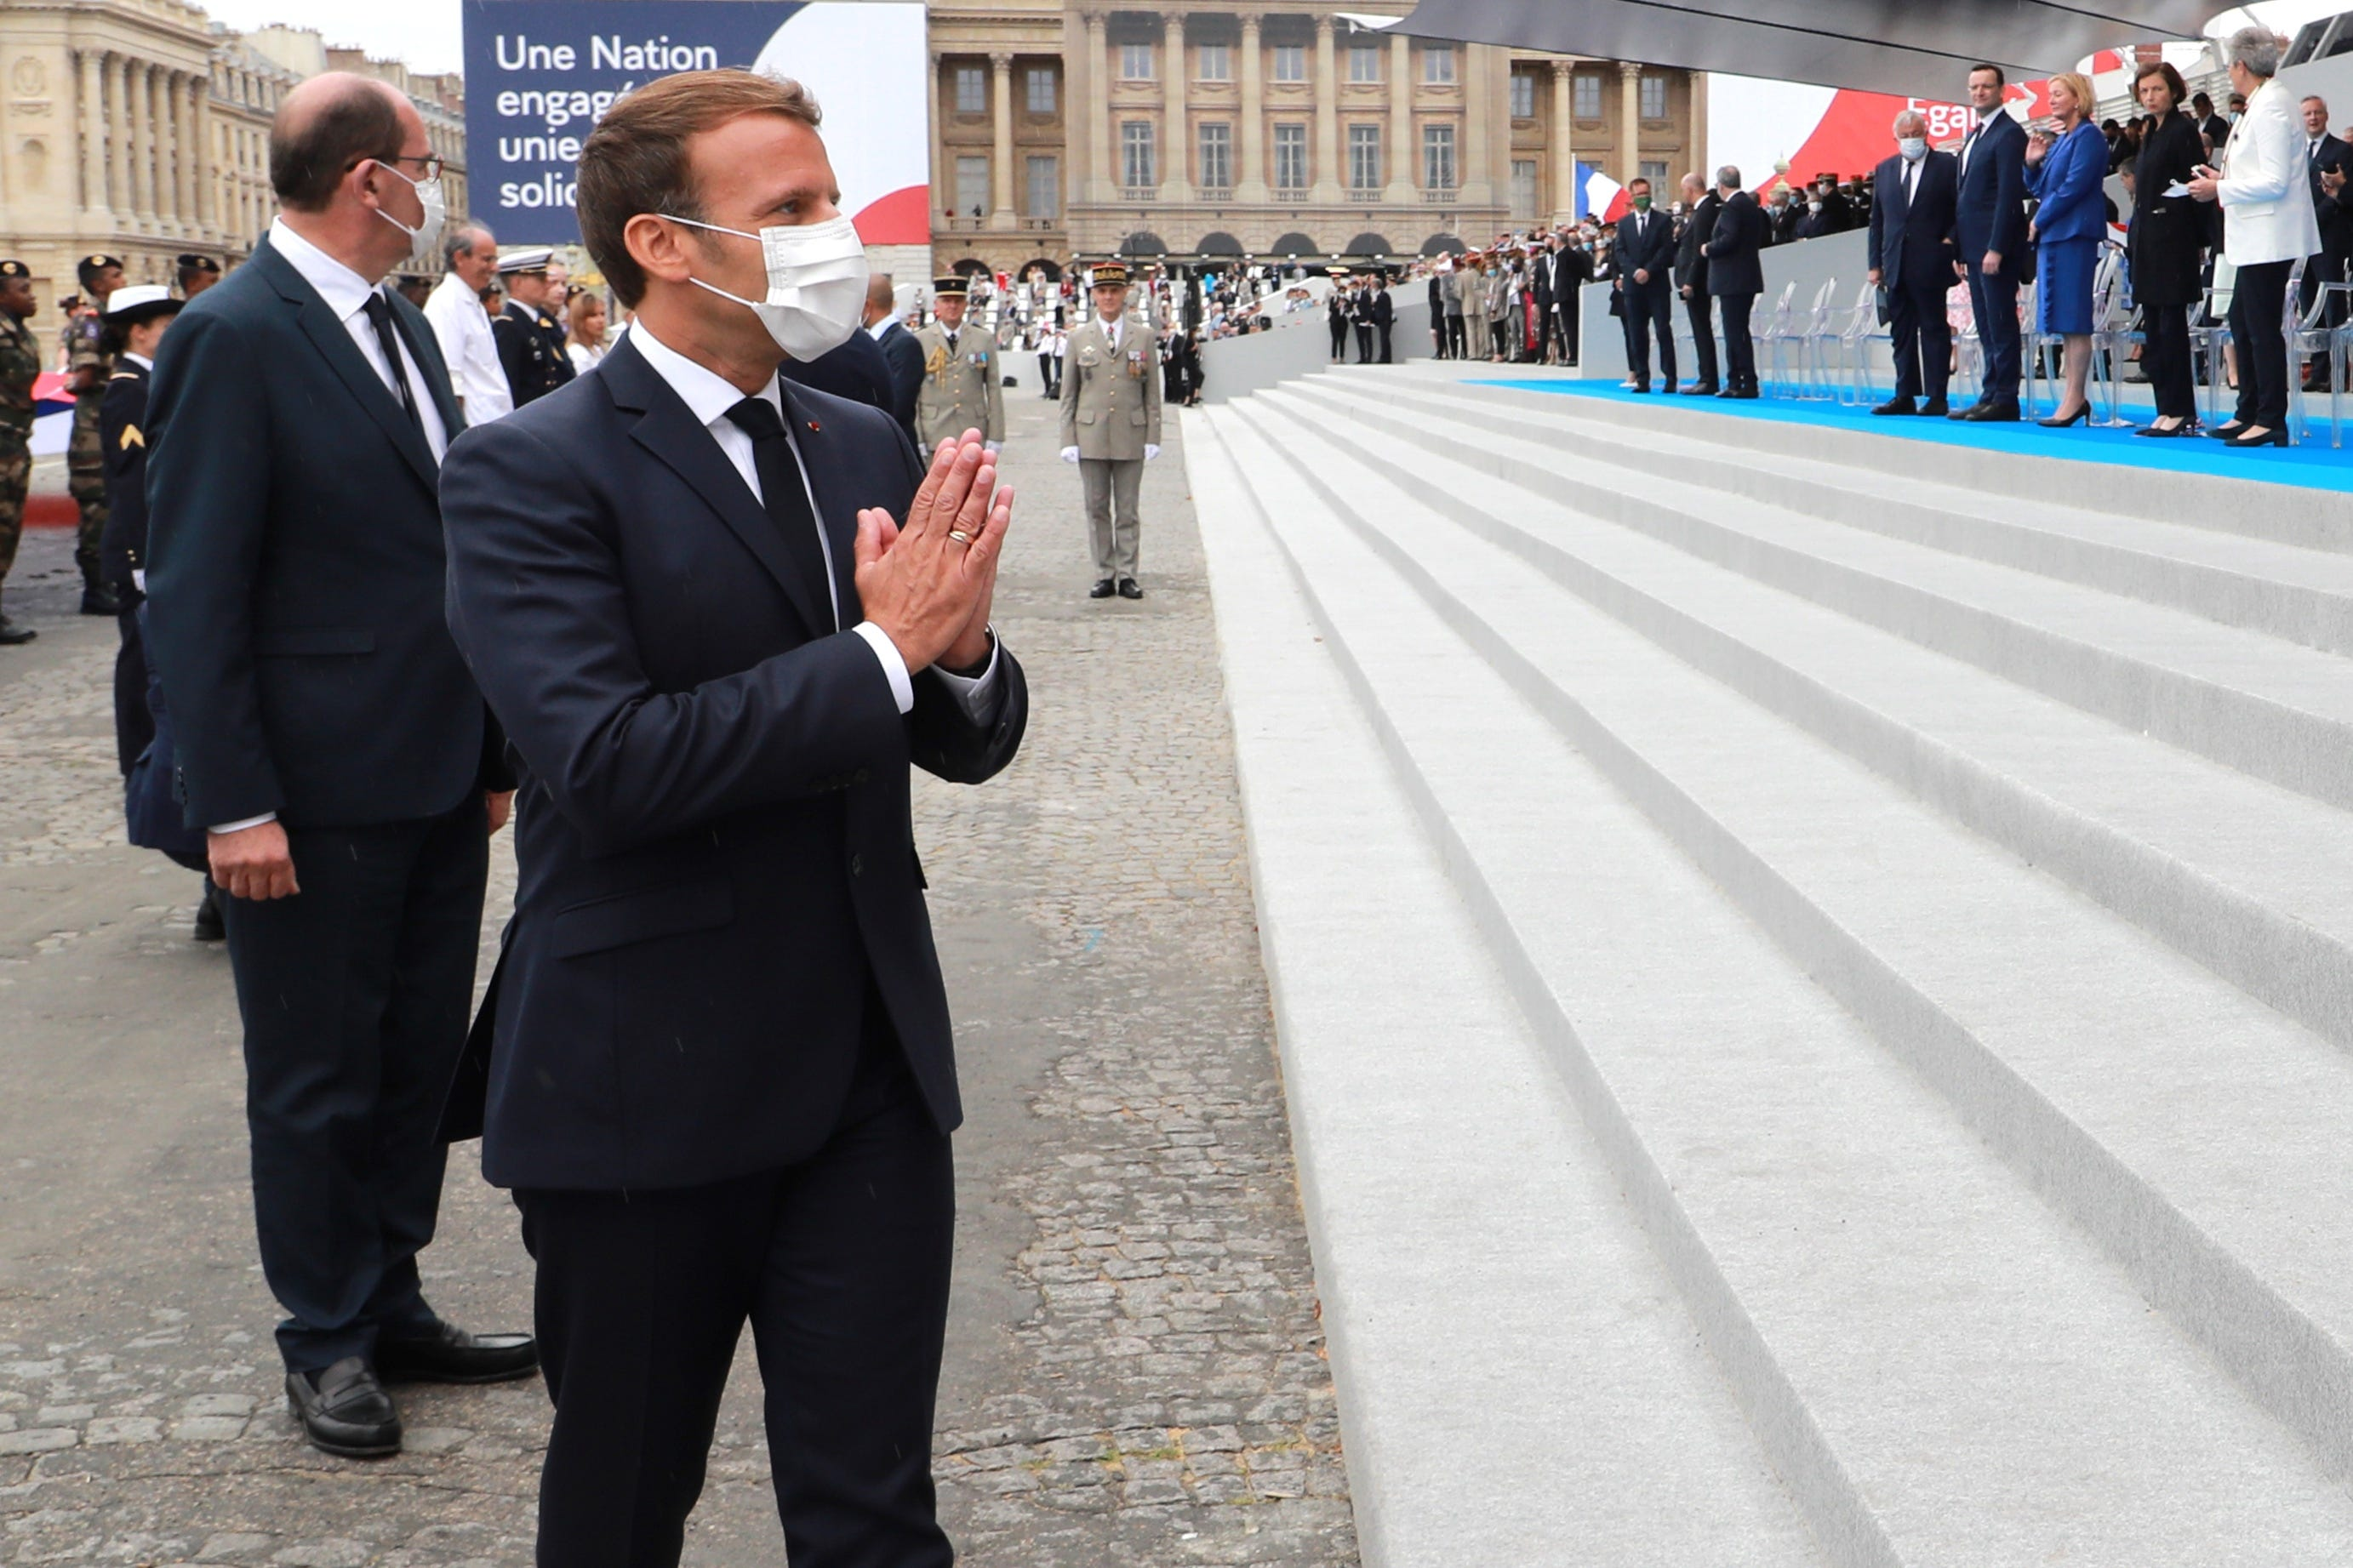 Macron says France will begin lifting restrictions in May for vaccinated travelers